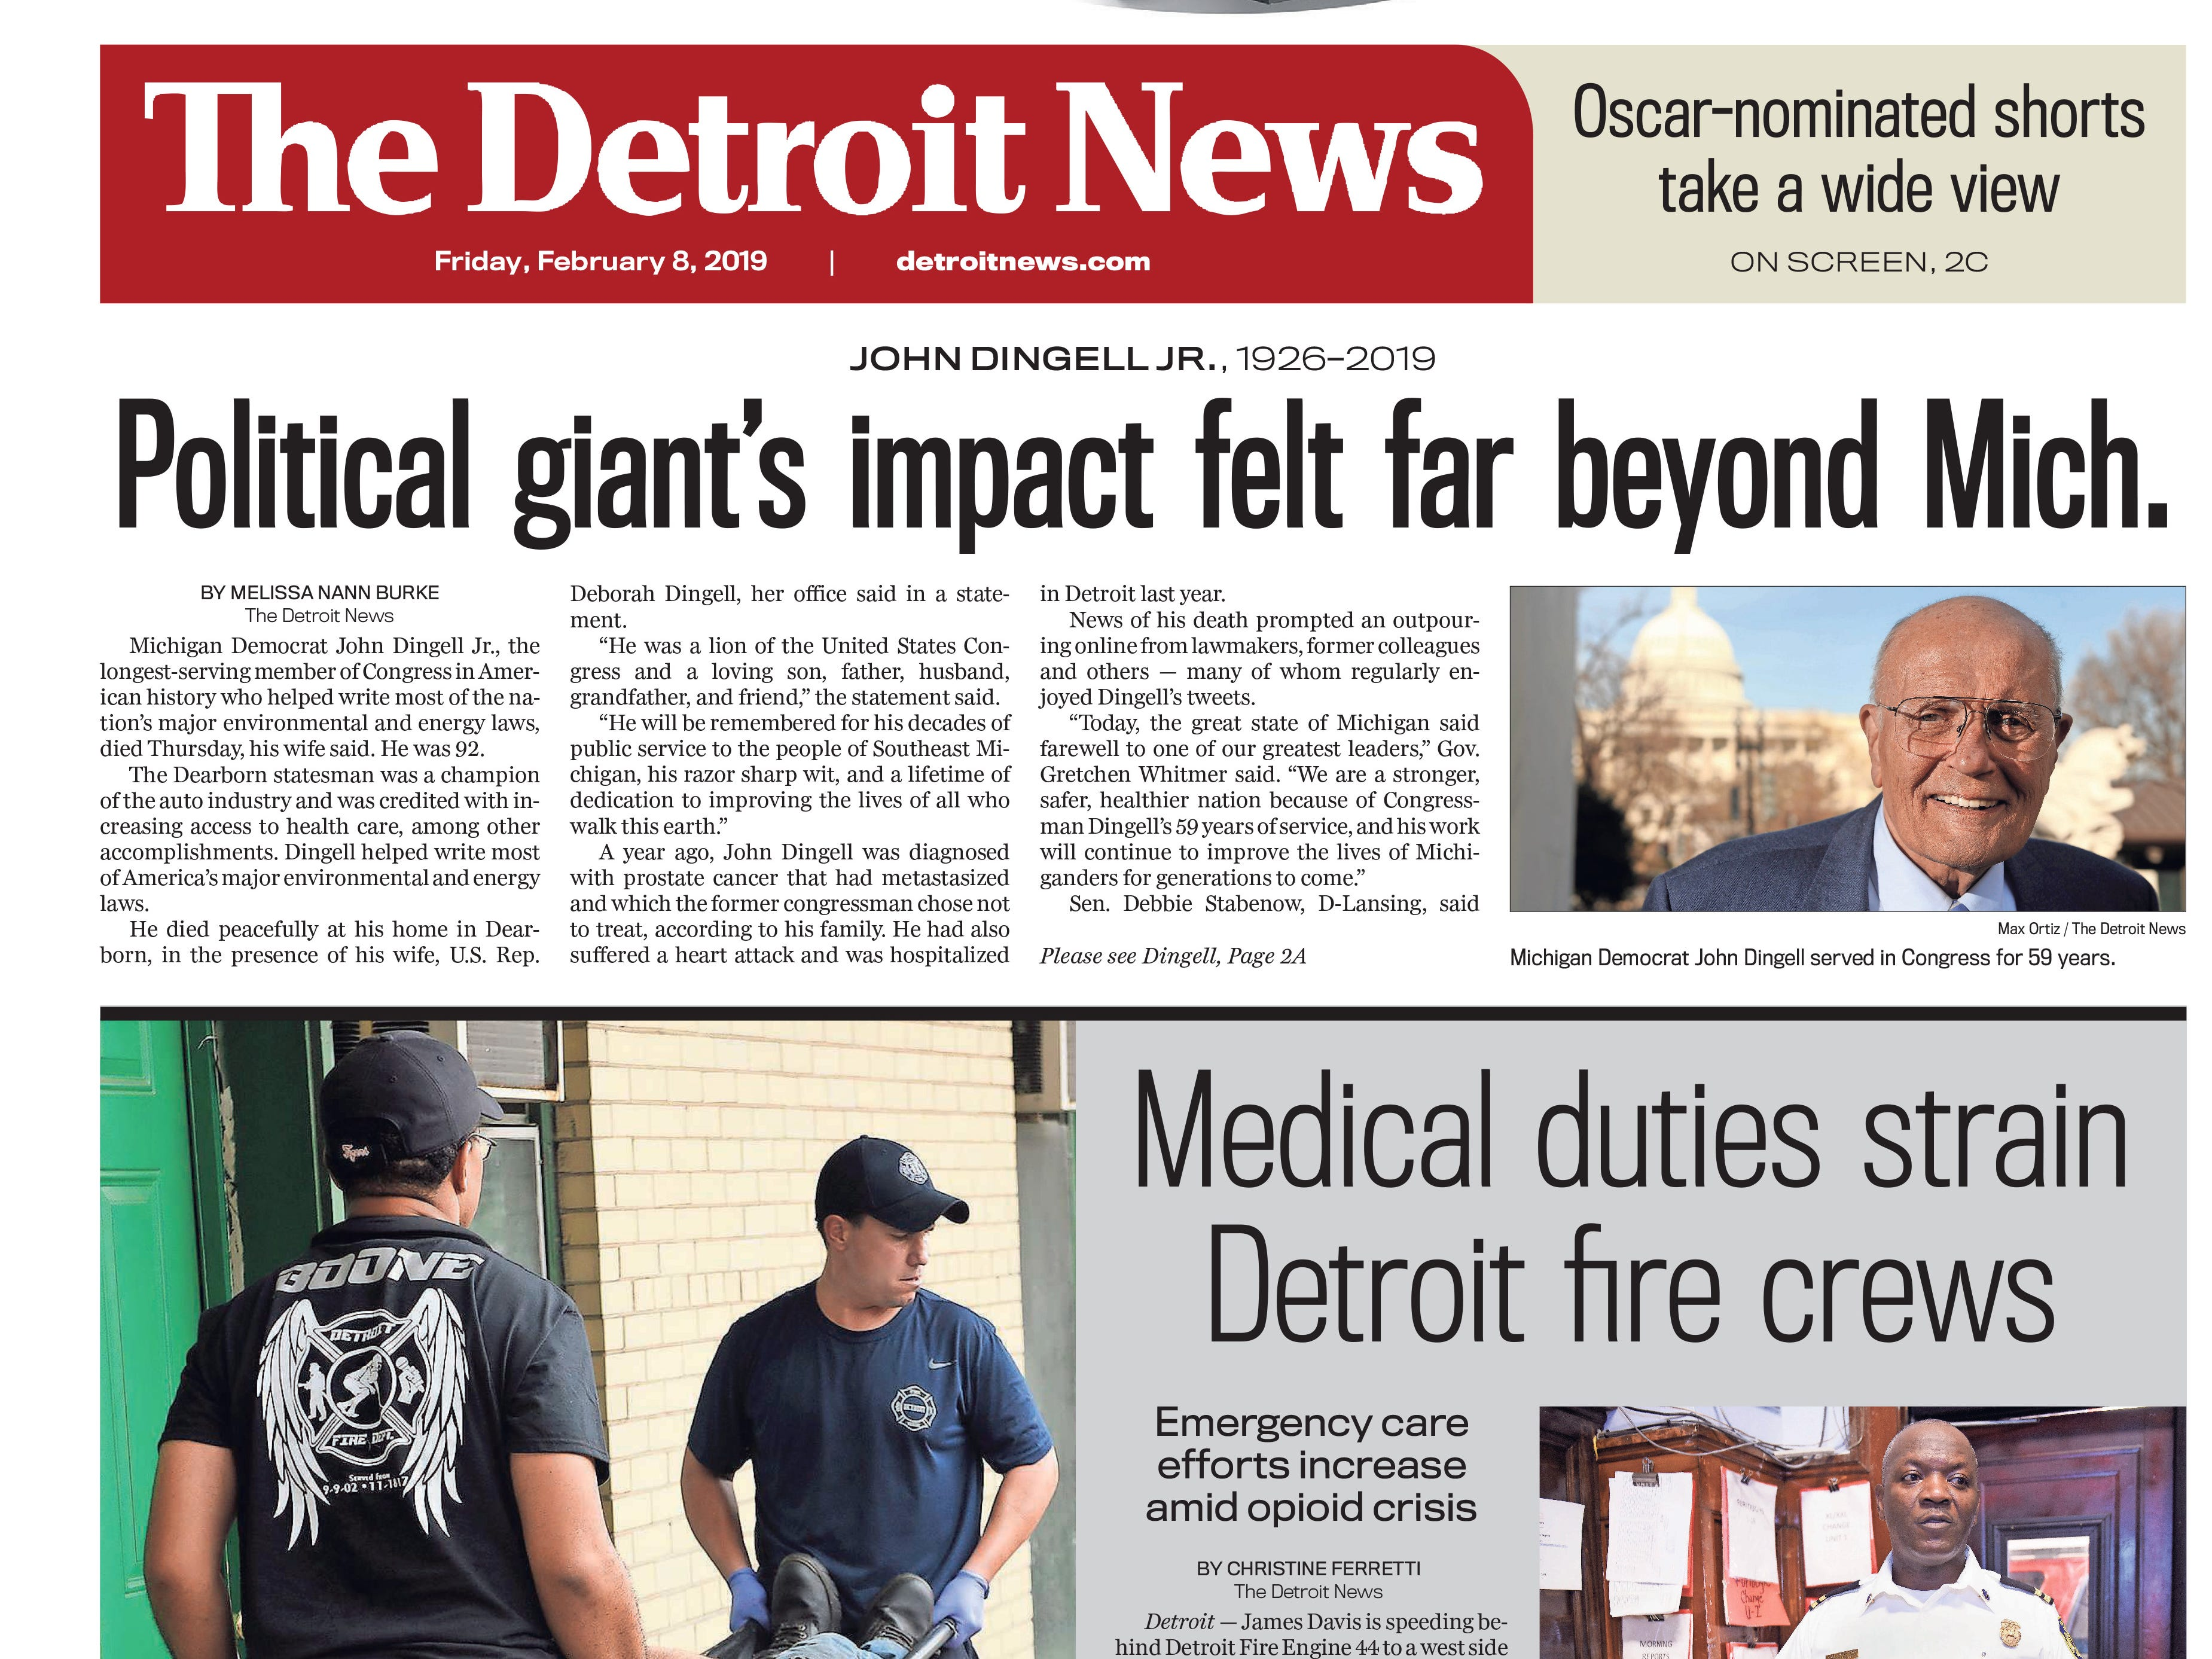 The front page of the Detroit News on Friday, February 8, 2019.